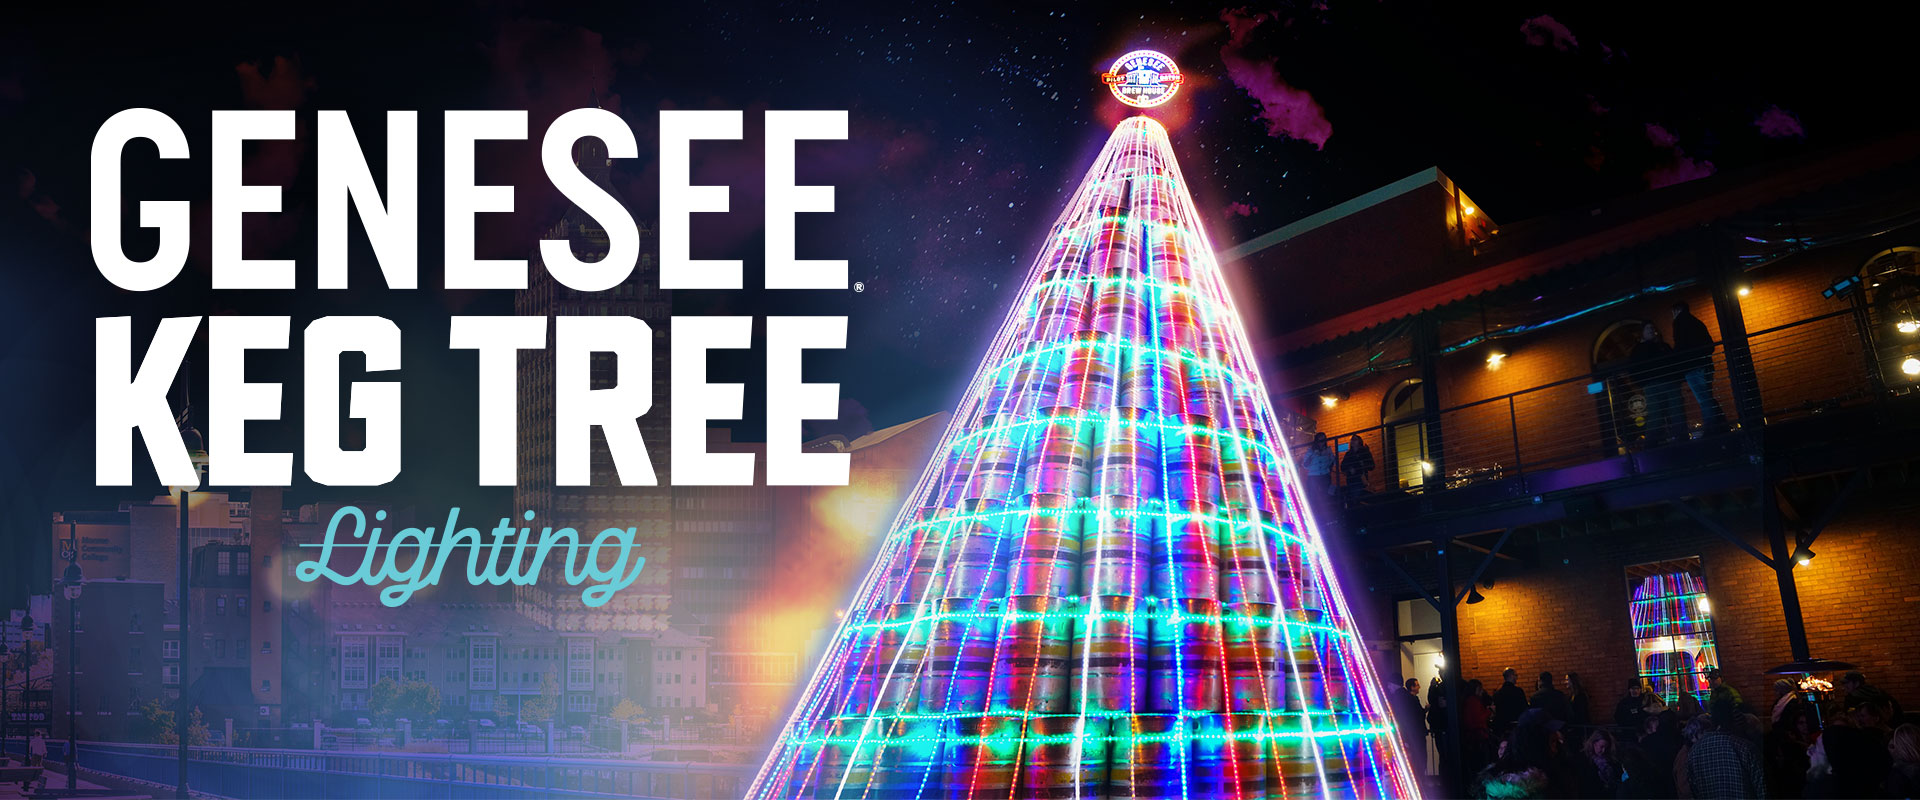 Genesee Keg Tree Lighting